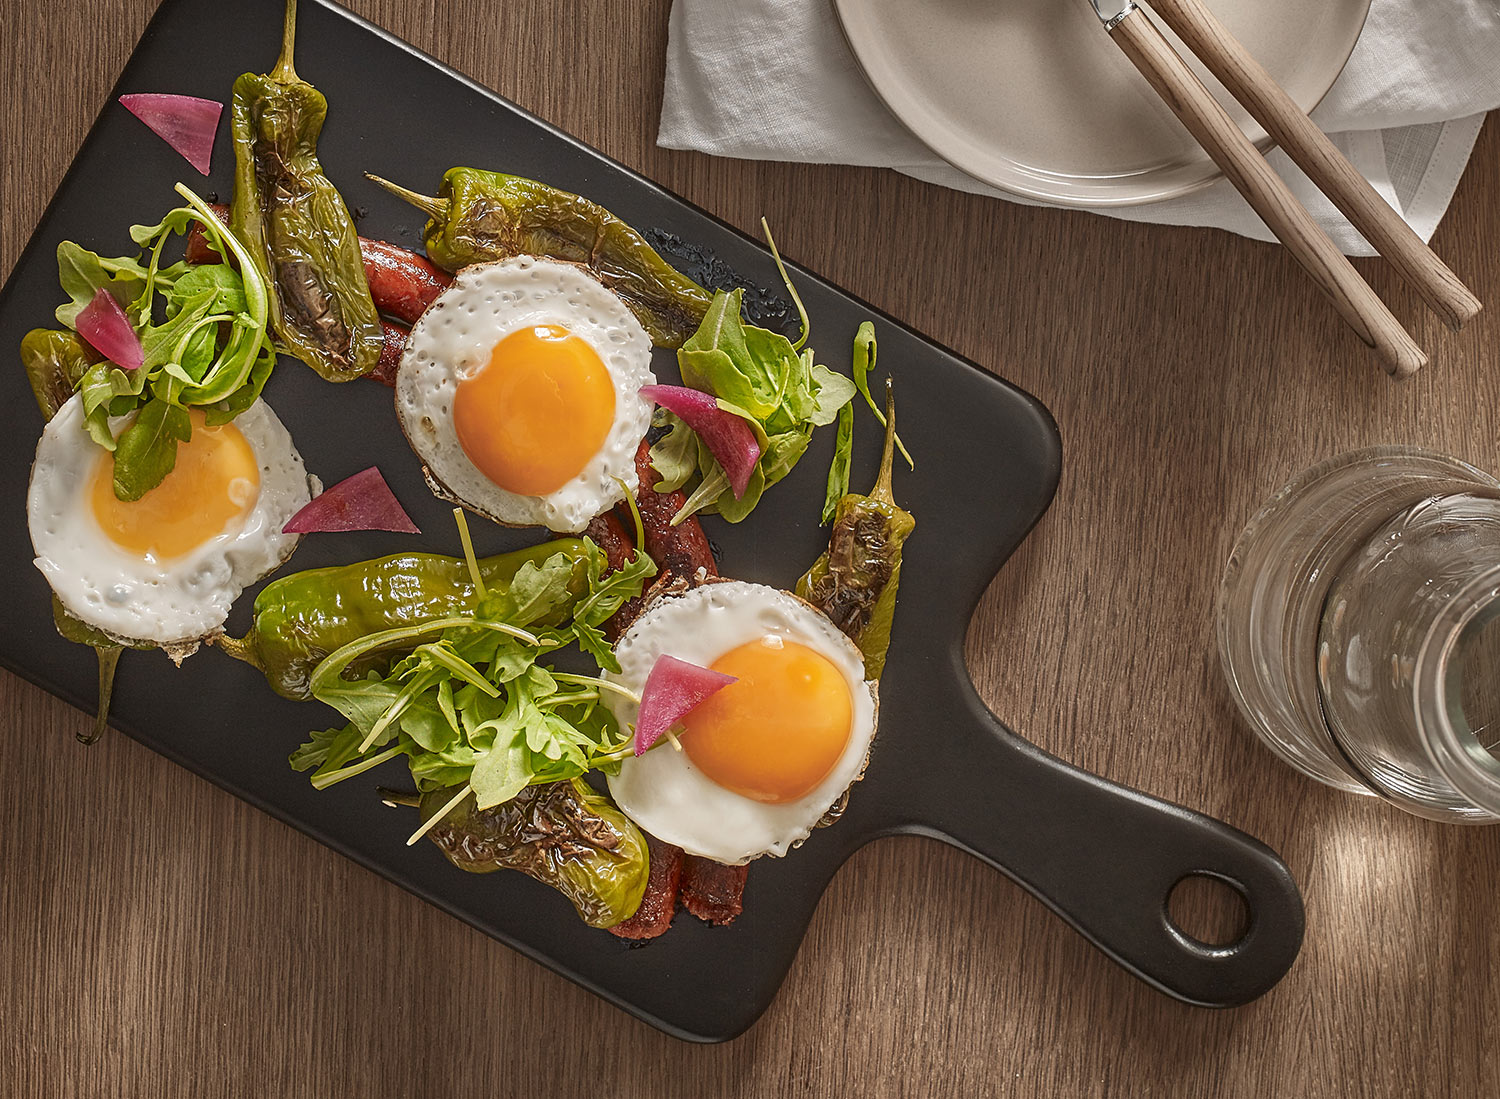 Oeuf frit Xistorra Recette plancha